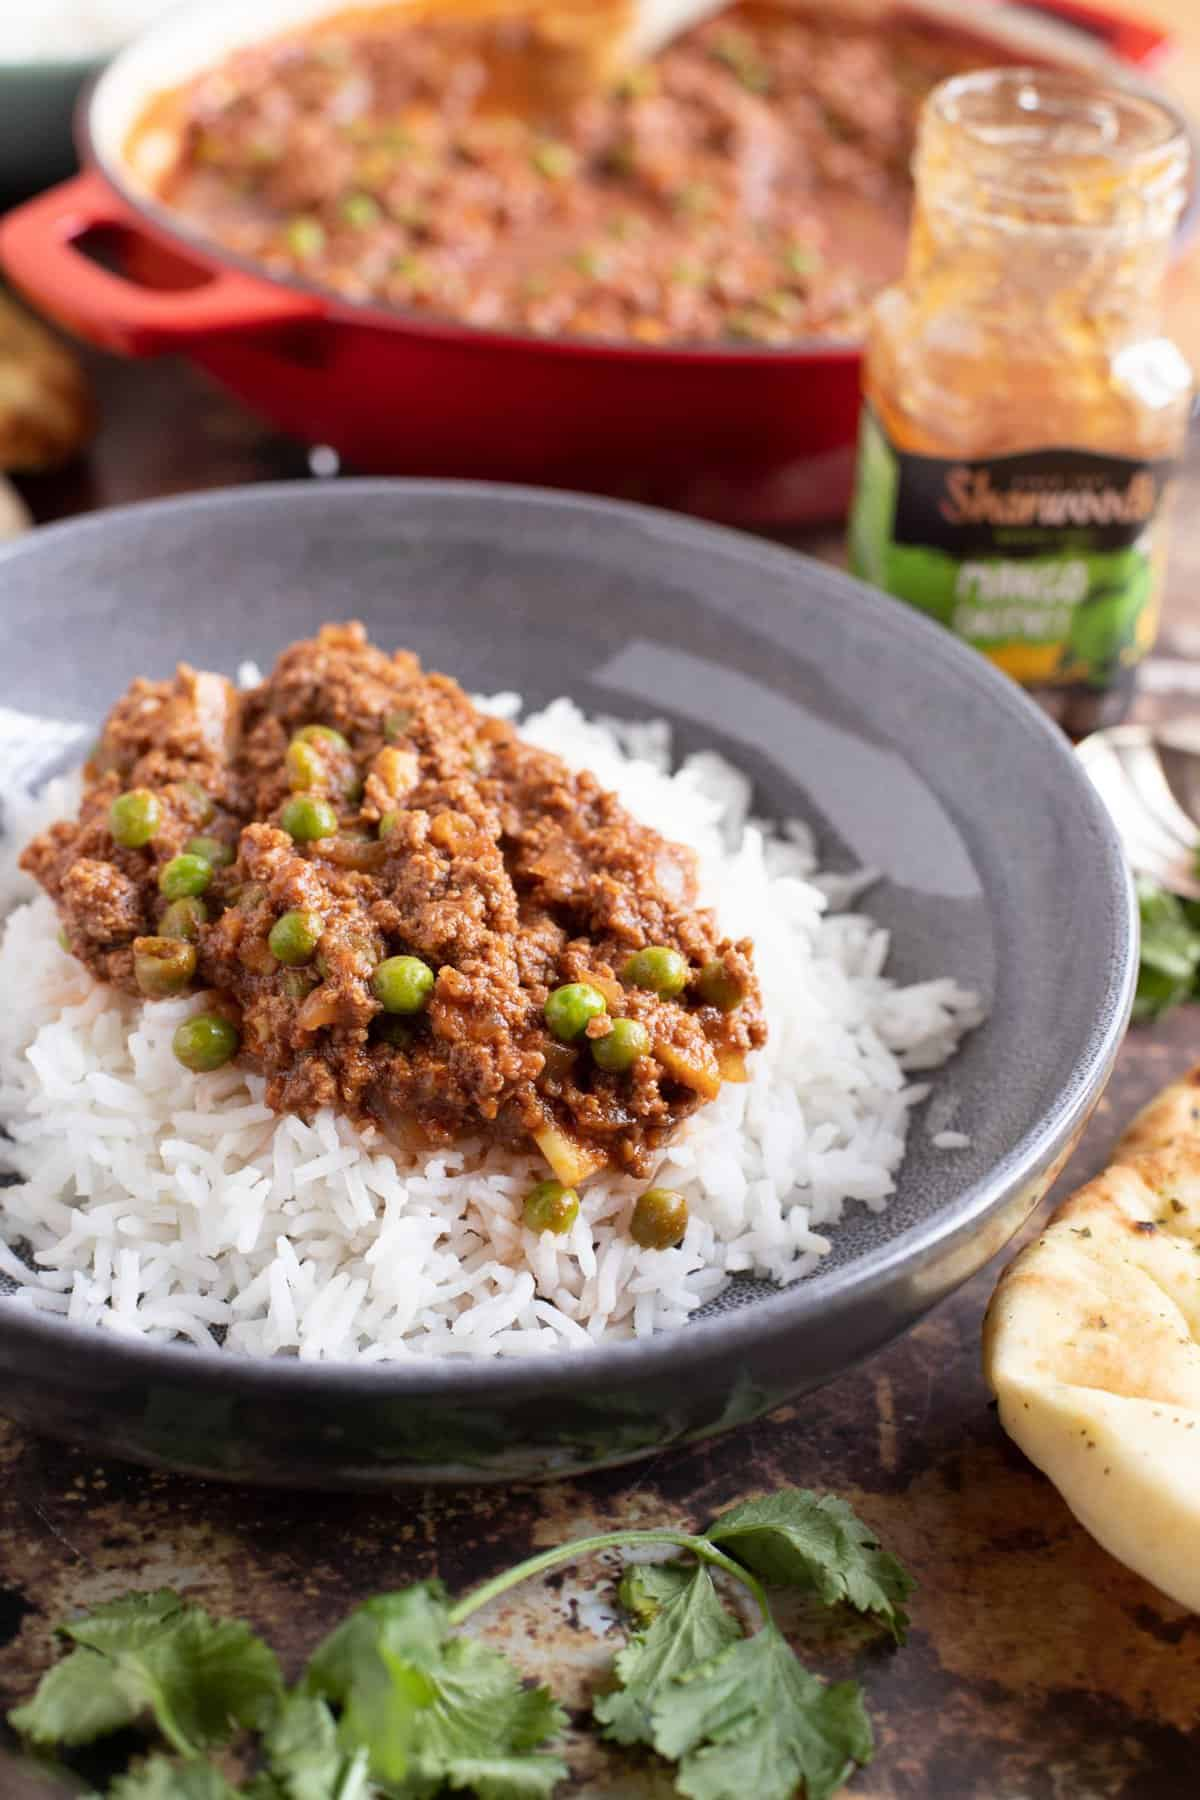 Keema Matar curry on a bed of rice.